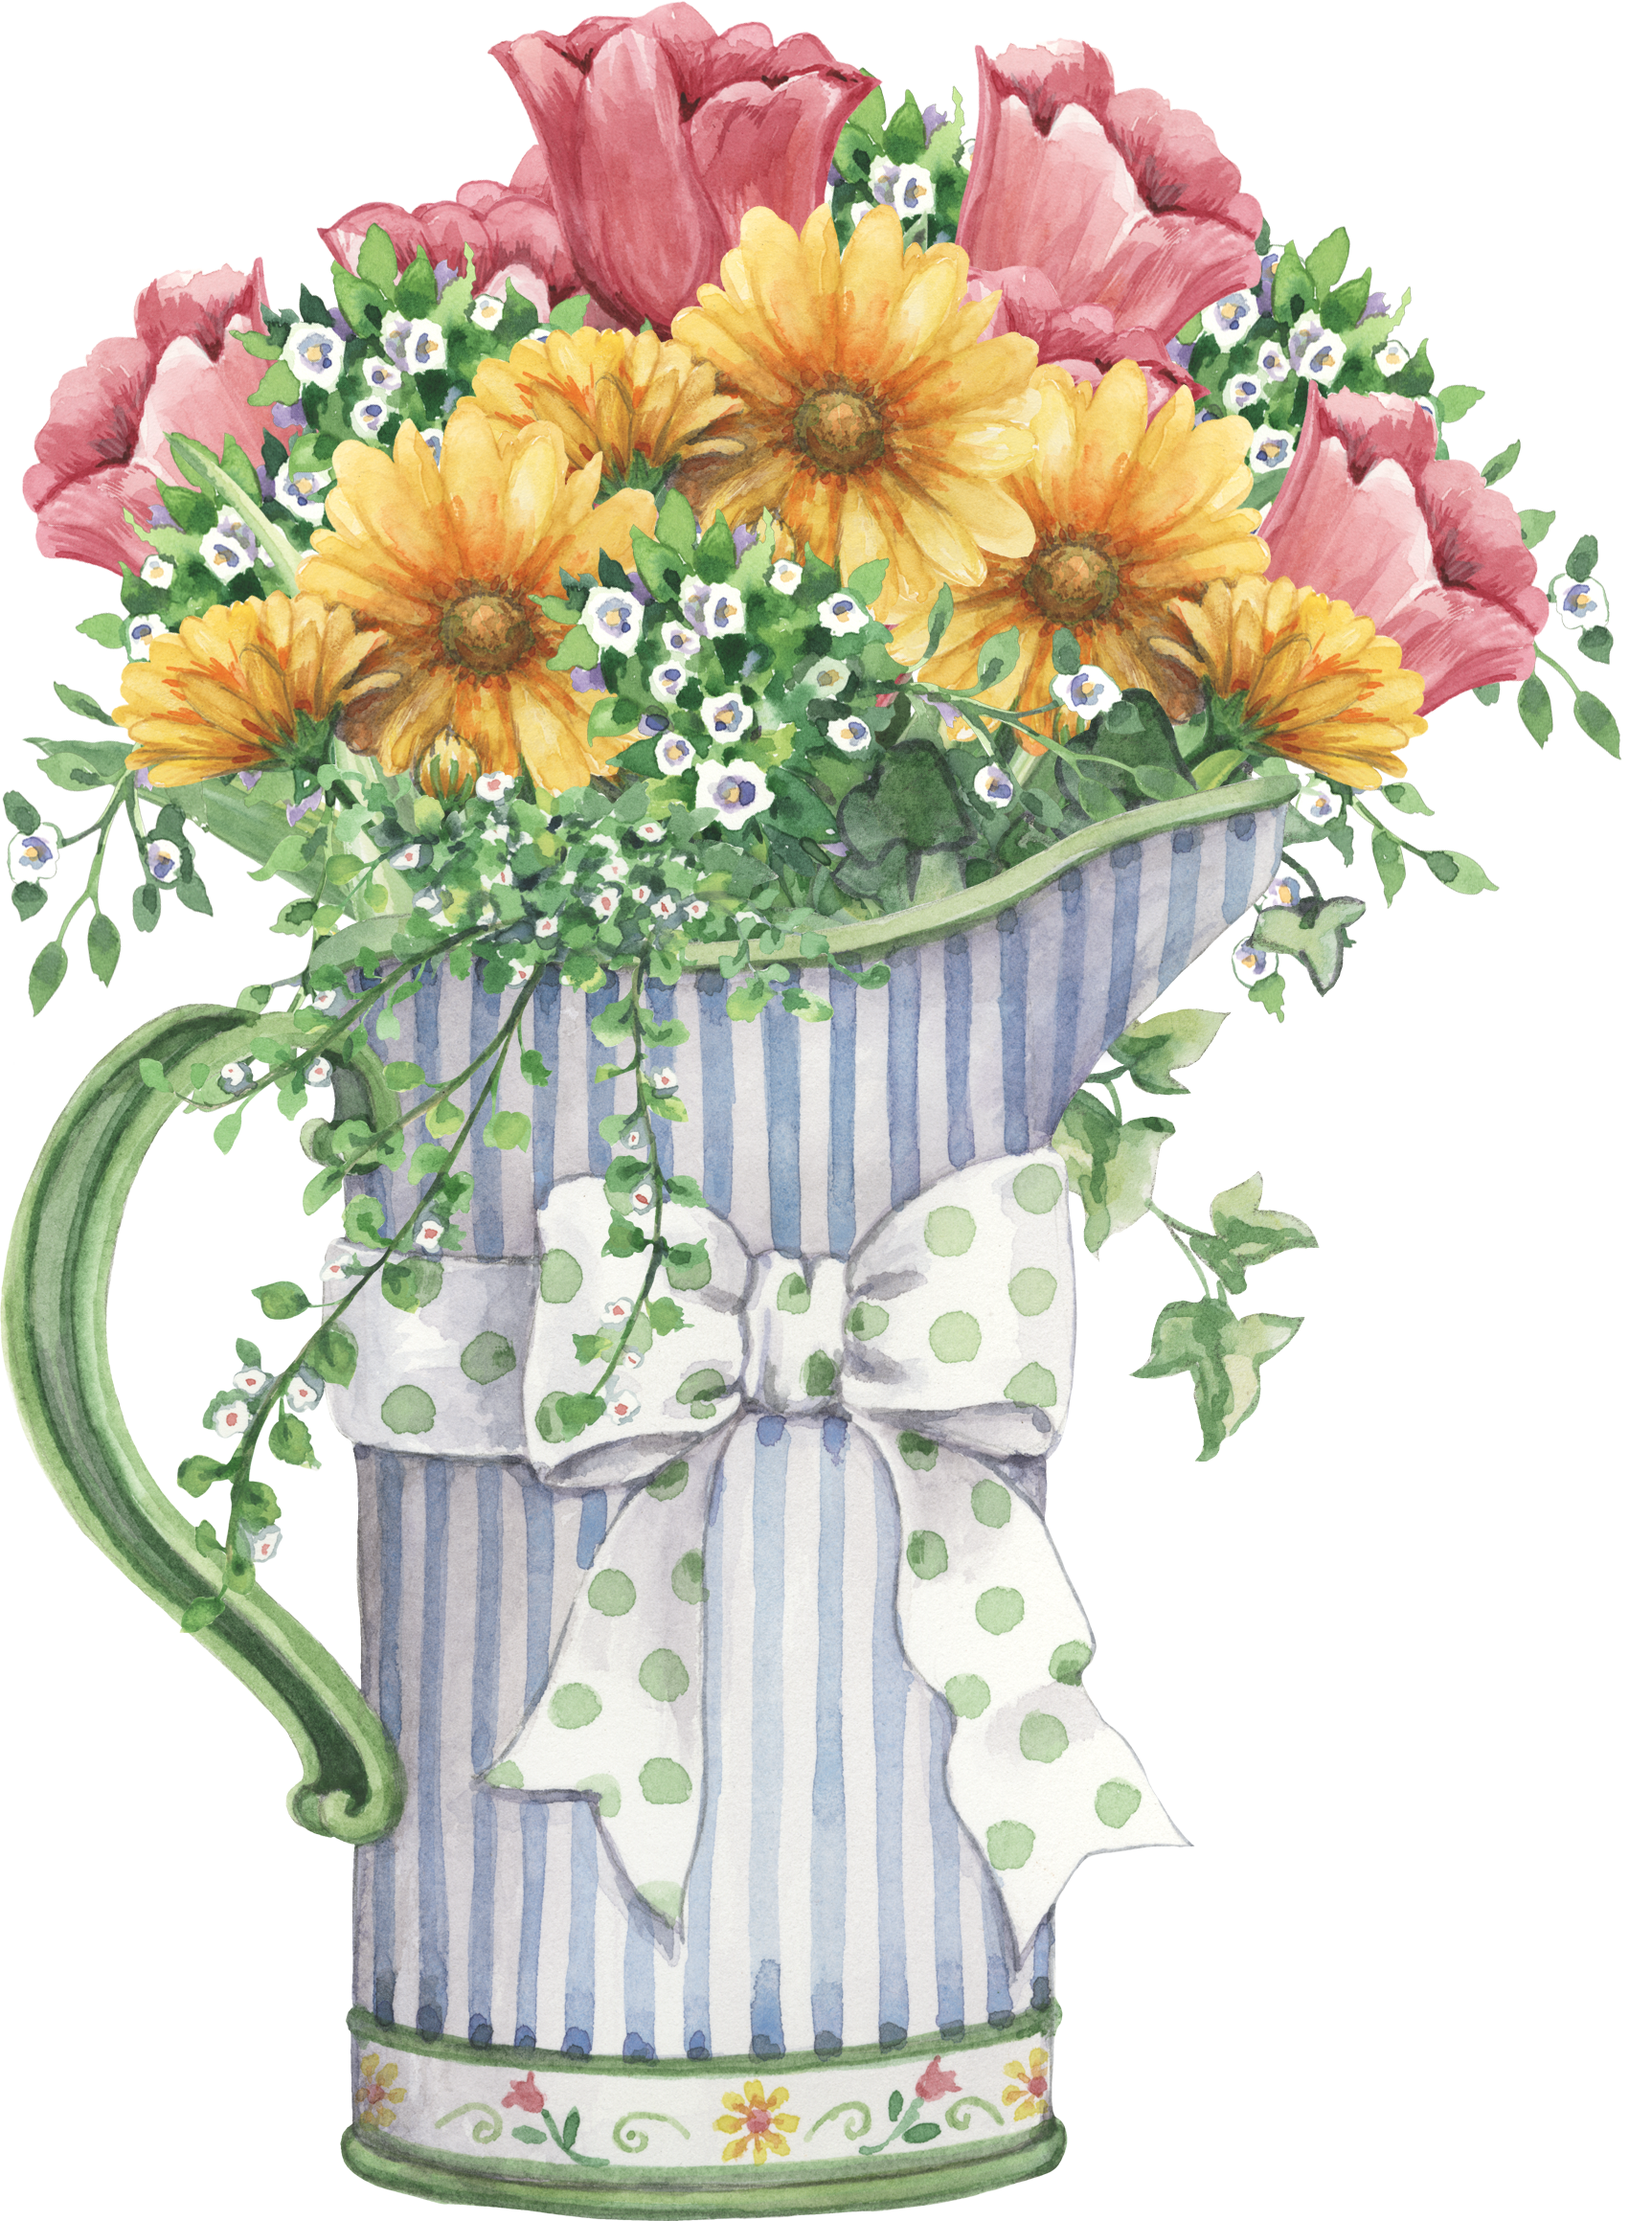 Free watercolor floral bushel clipart image black and white stock image only | FLOWERS | Decoupage printables, Flowers, Clip art image black and white stock